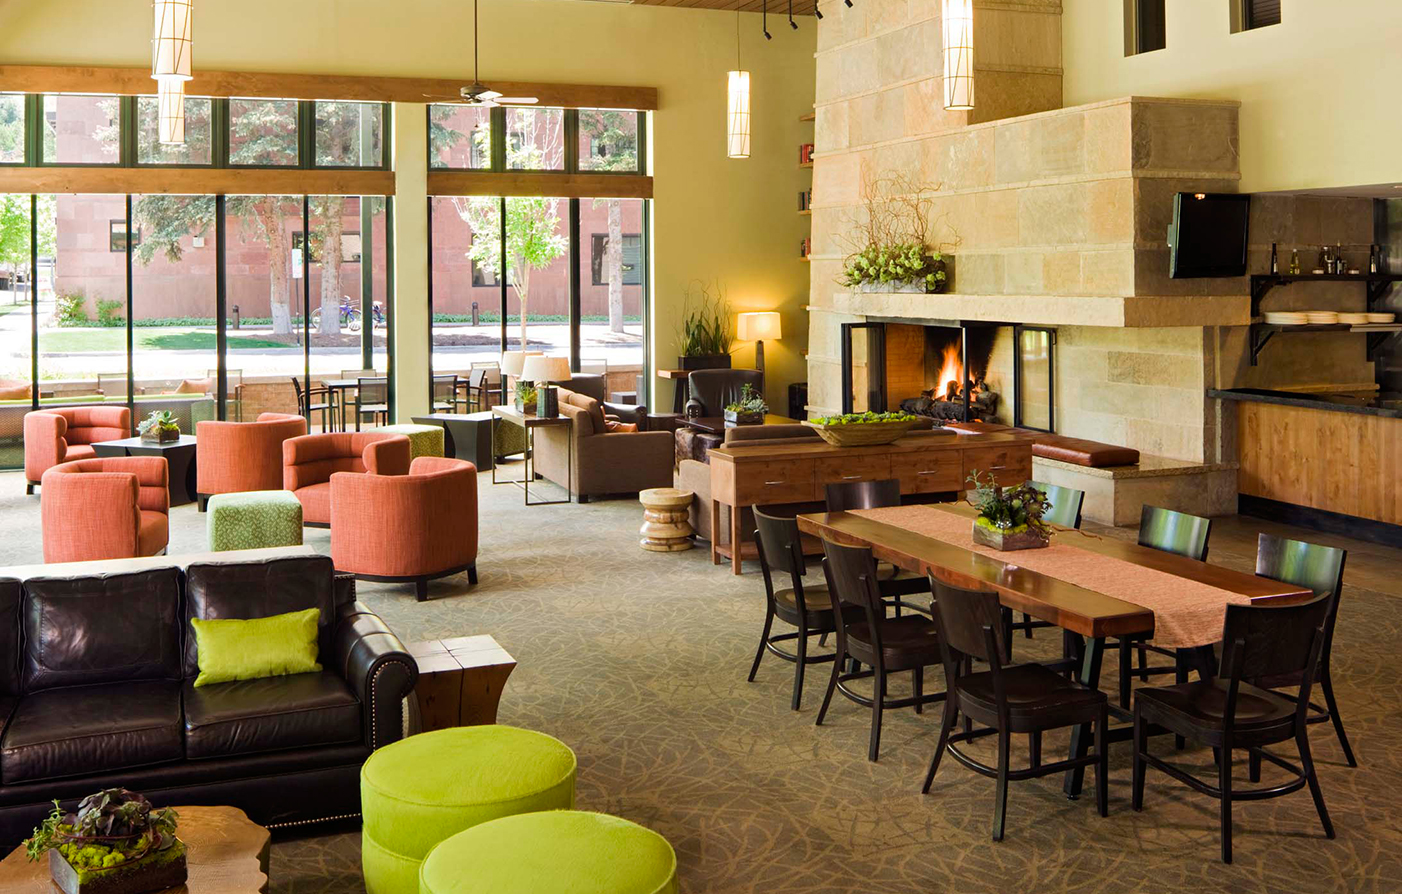 Dining:      The Limelight Hotel  in Aspen